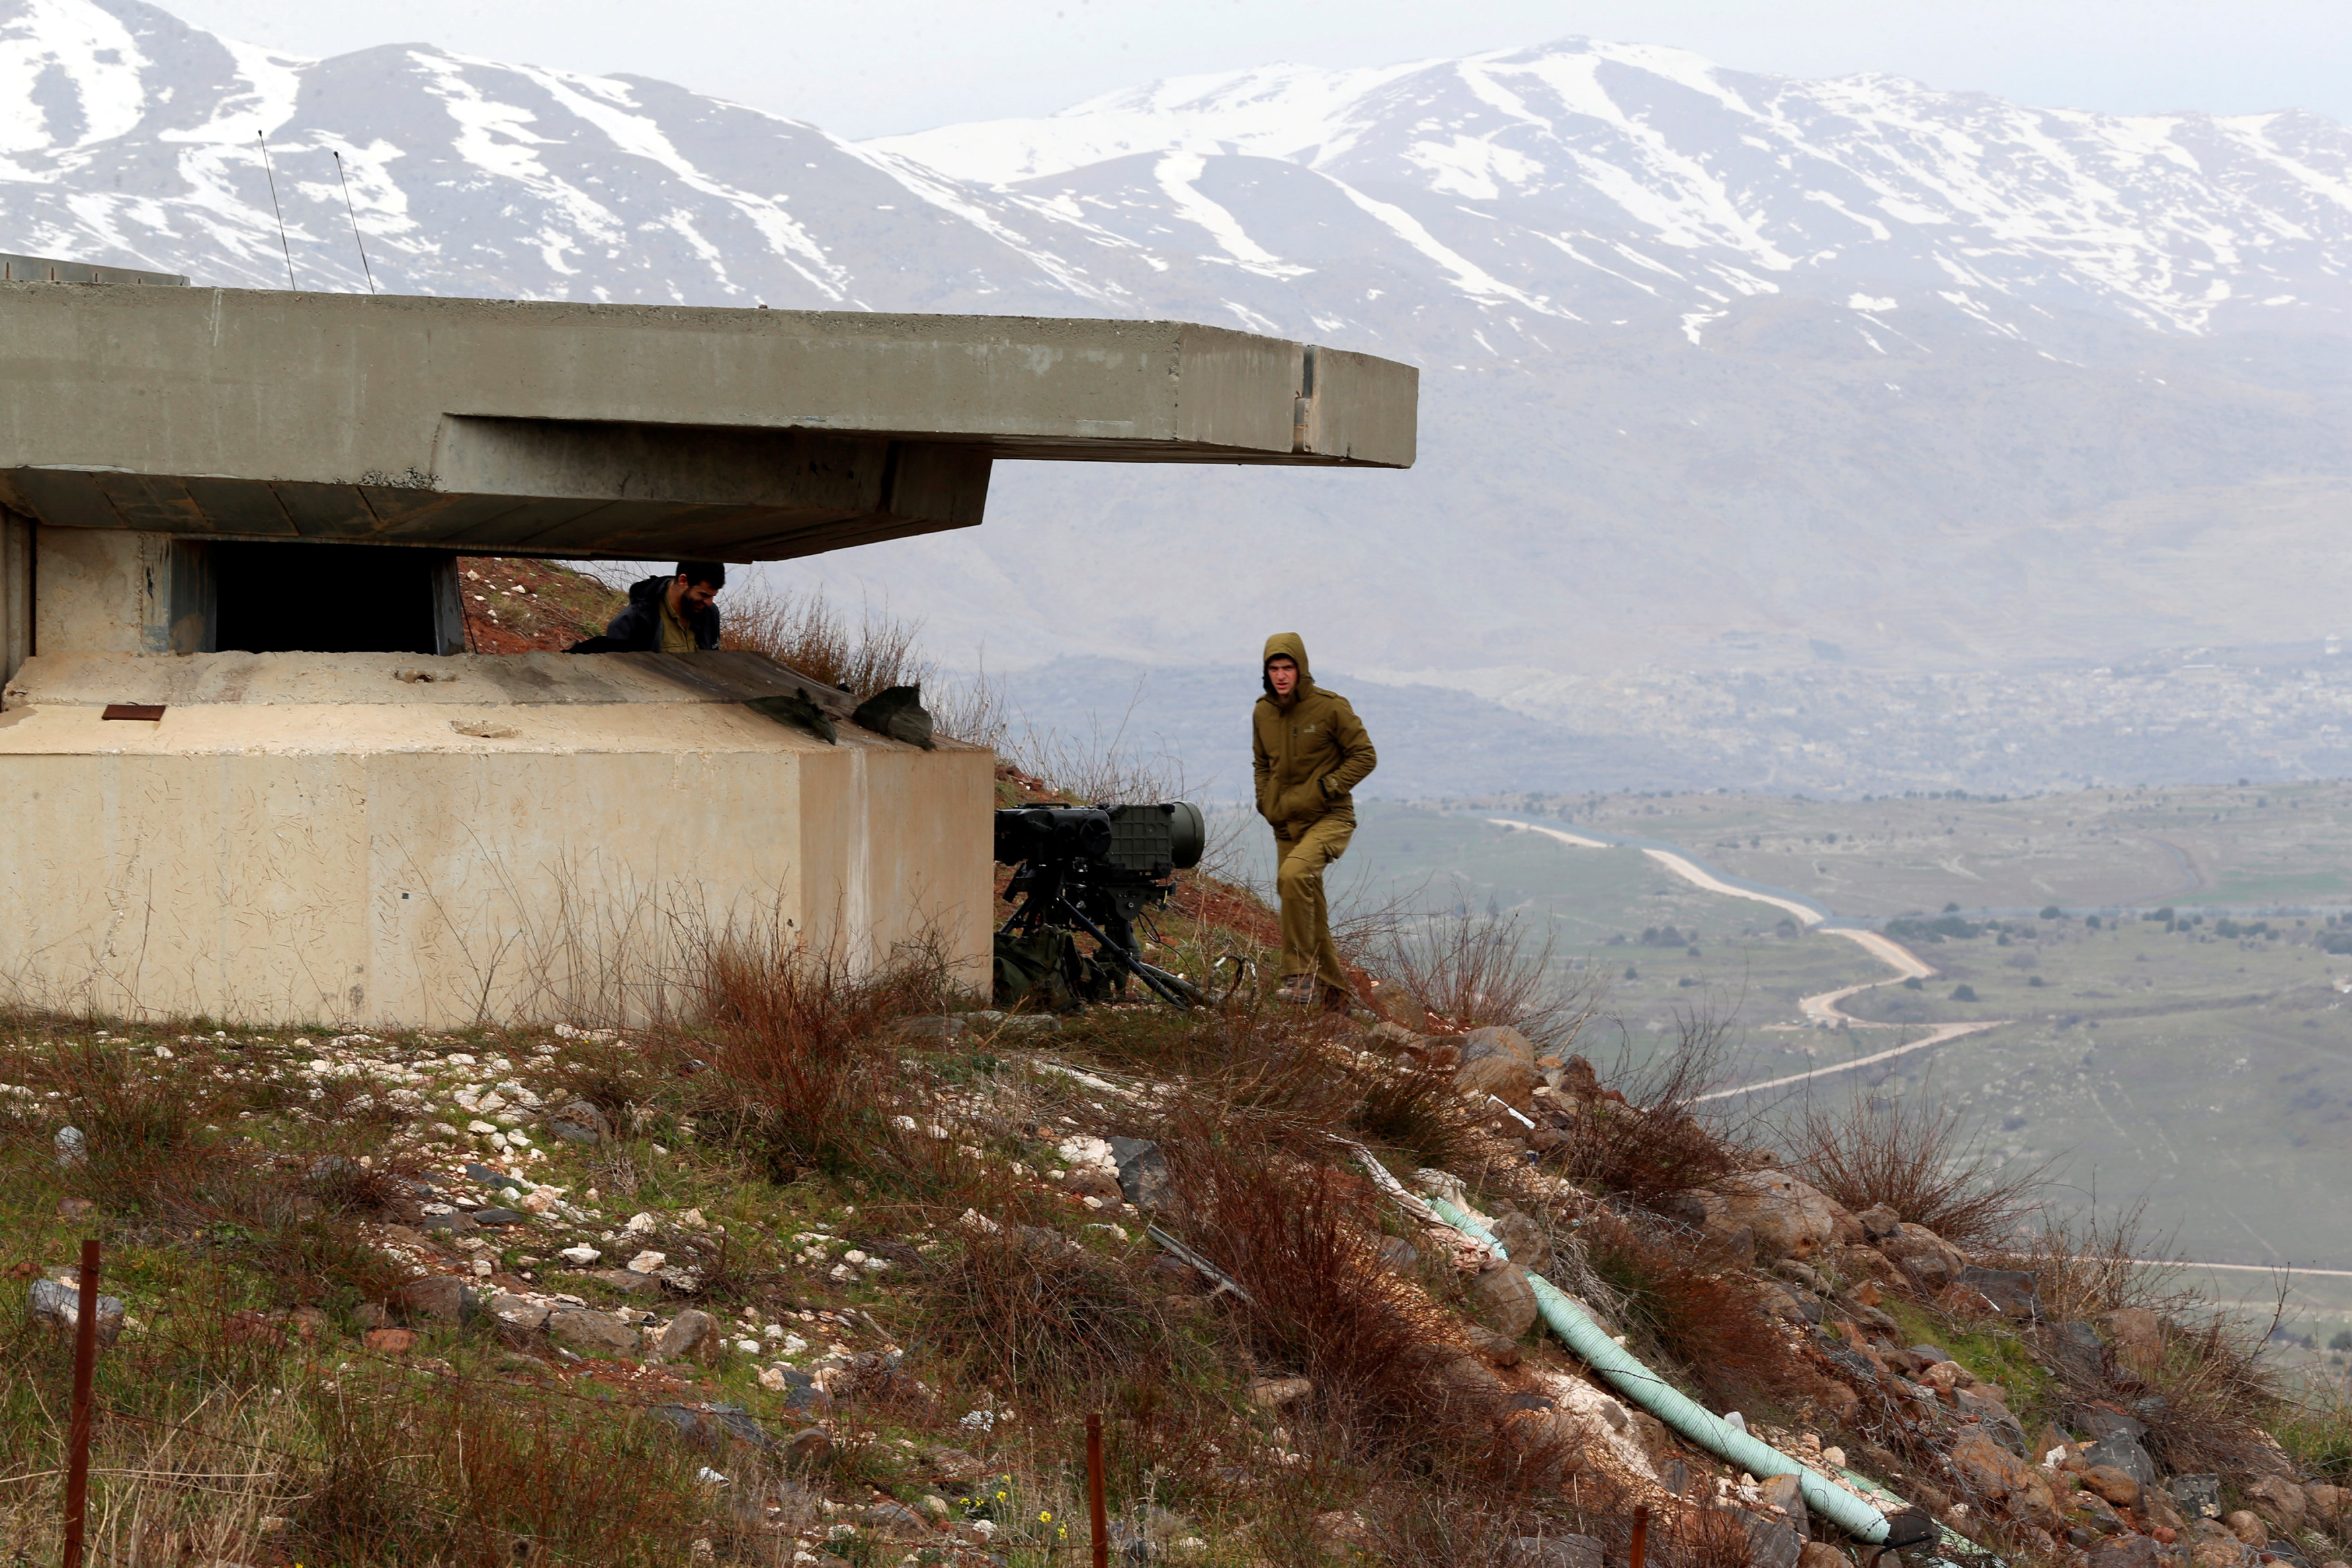 FILE PHOTO - An Israeli soldier walks near a military post close to the Druze village of Majdal Shams in the Israeli-occupied Golan Heights, Israel February 10, 2018. REUTERS/Ammar Awad/File Photo